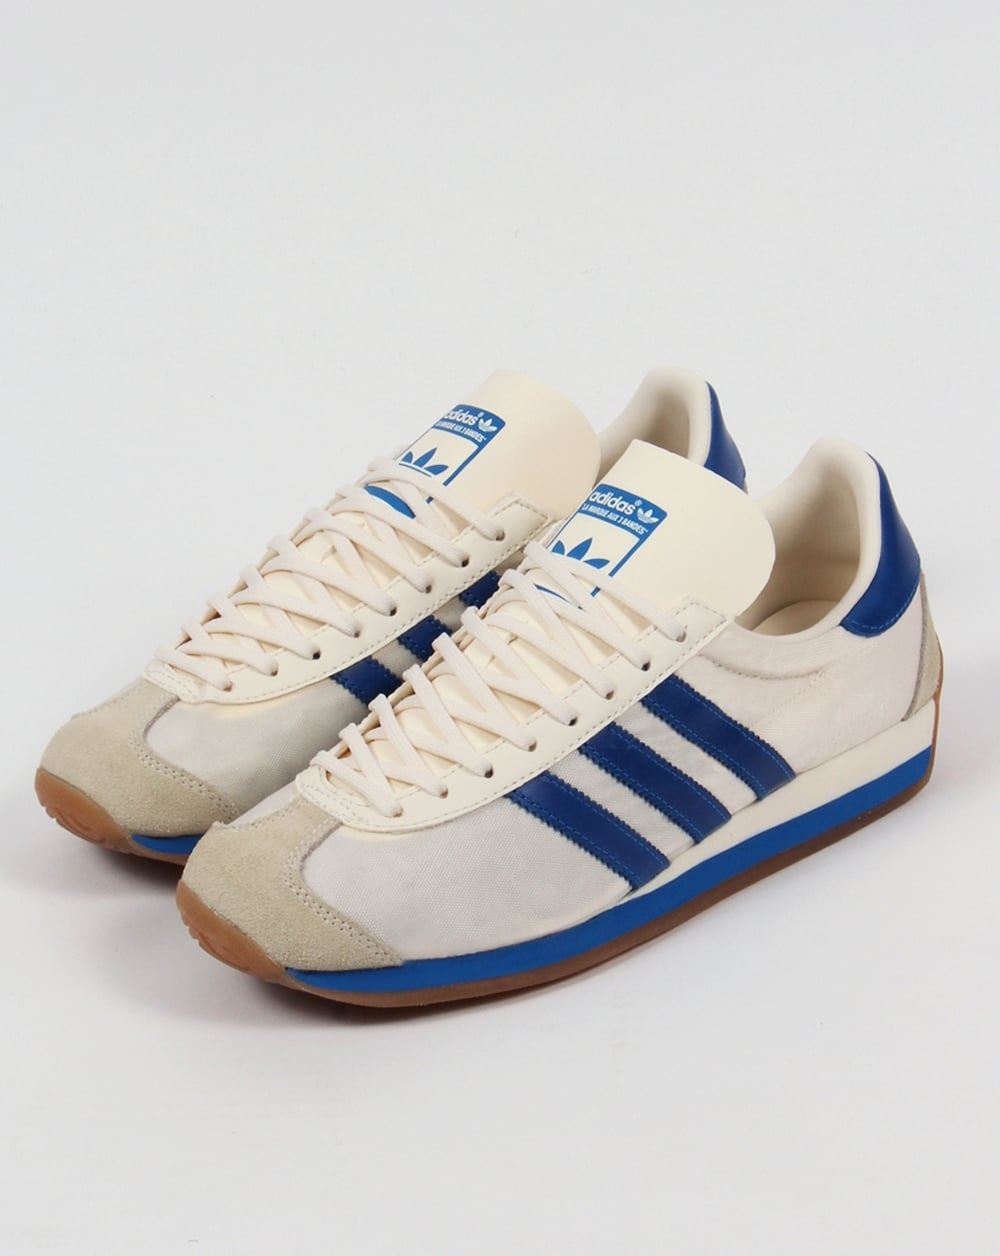 761a67404e1f Adidas Country OG Trainers Chalk White Bluebird